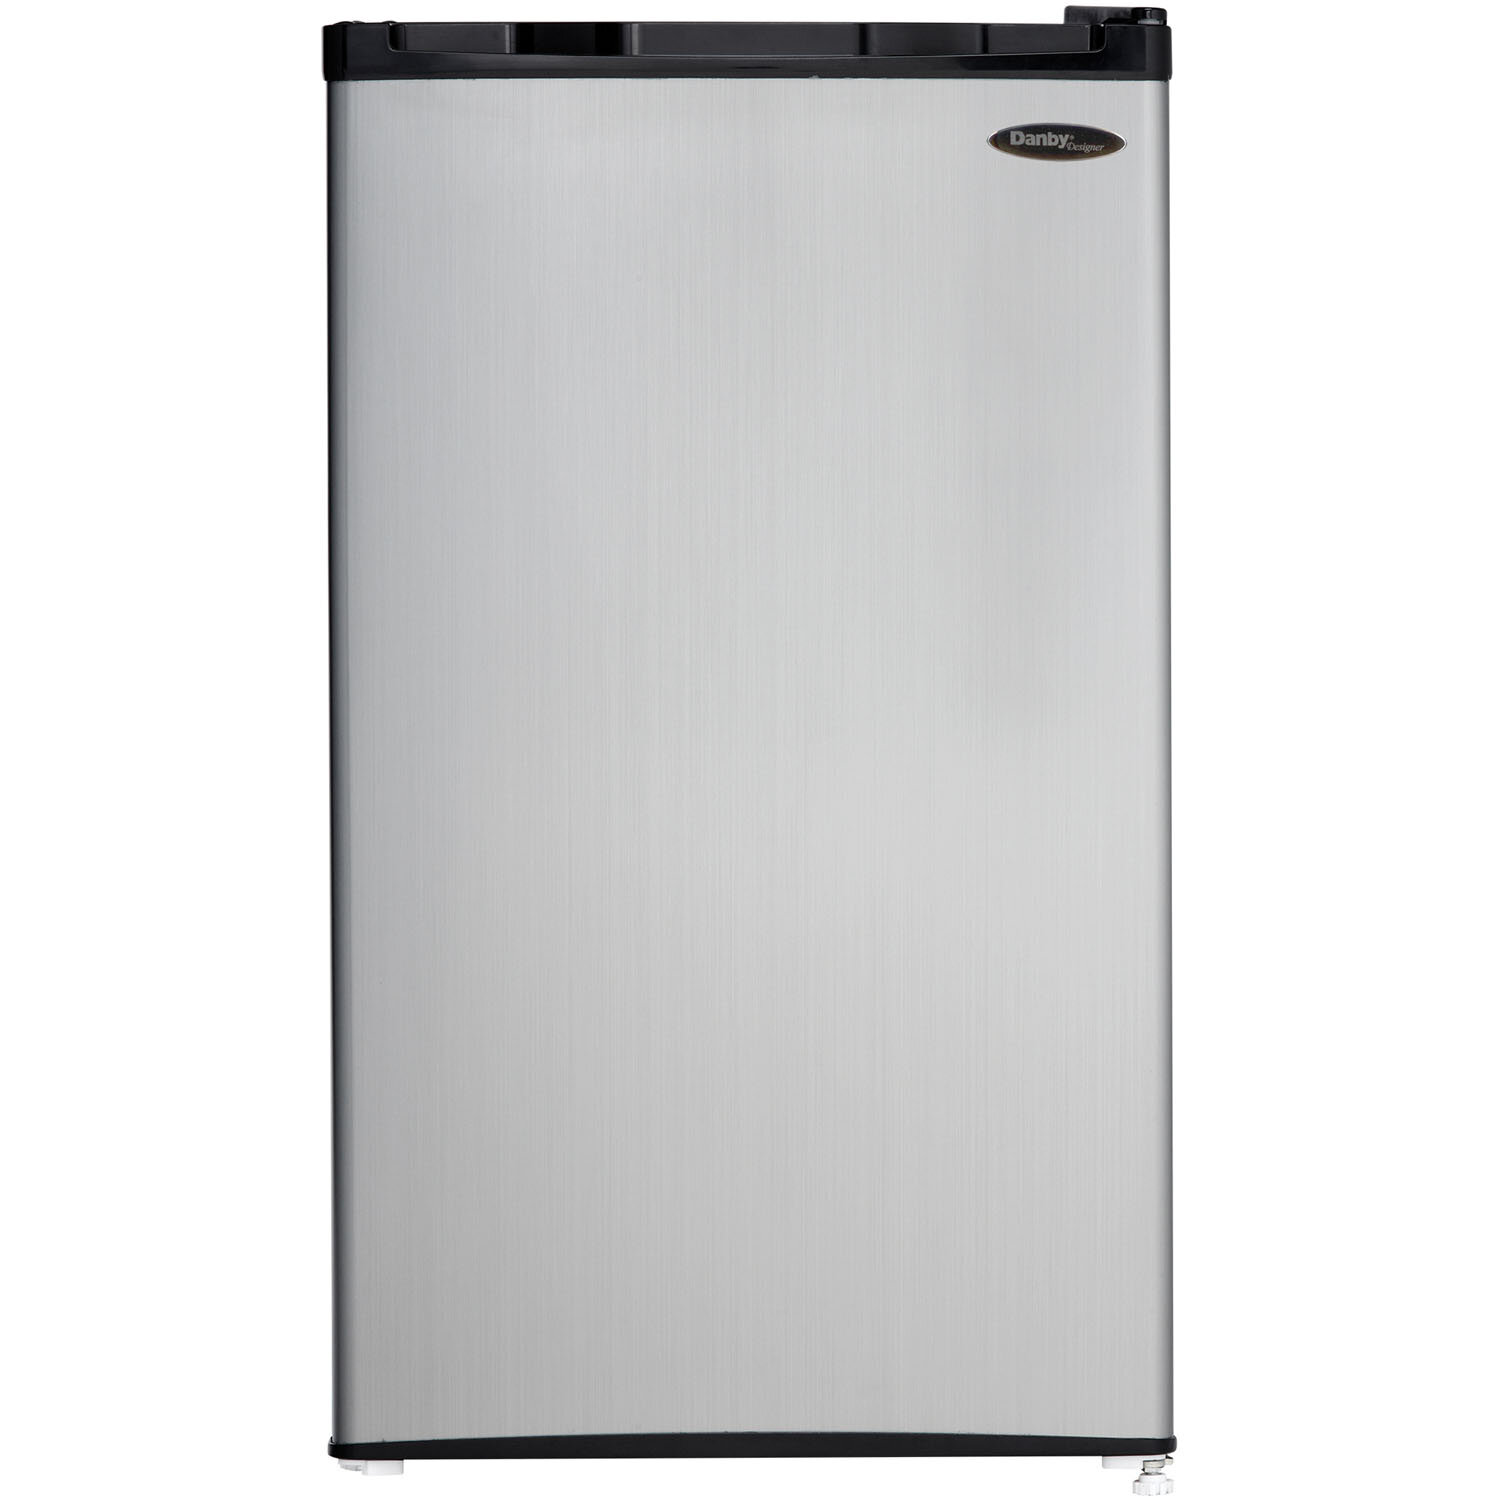 b65b693c21e Compact Refrigerator with Freezer. By Danby